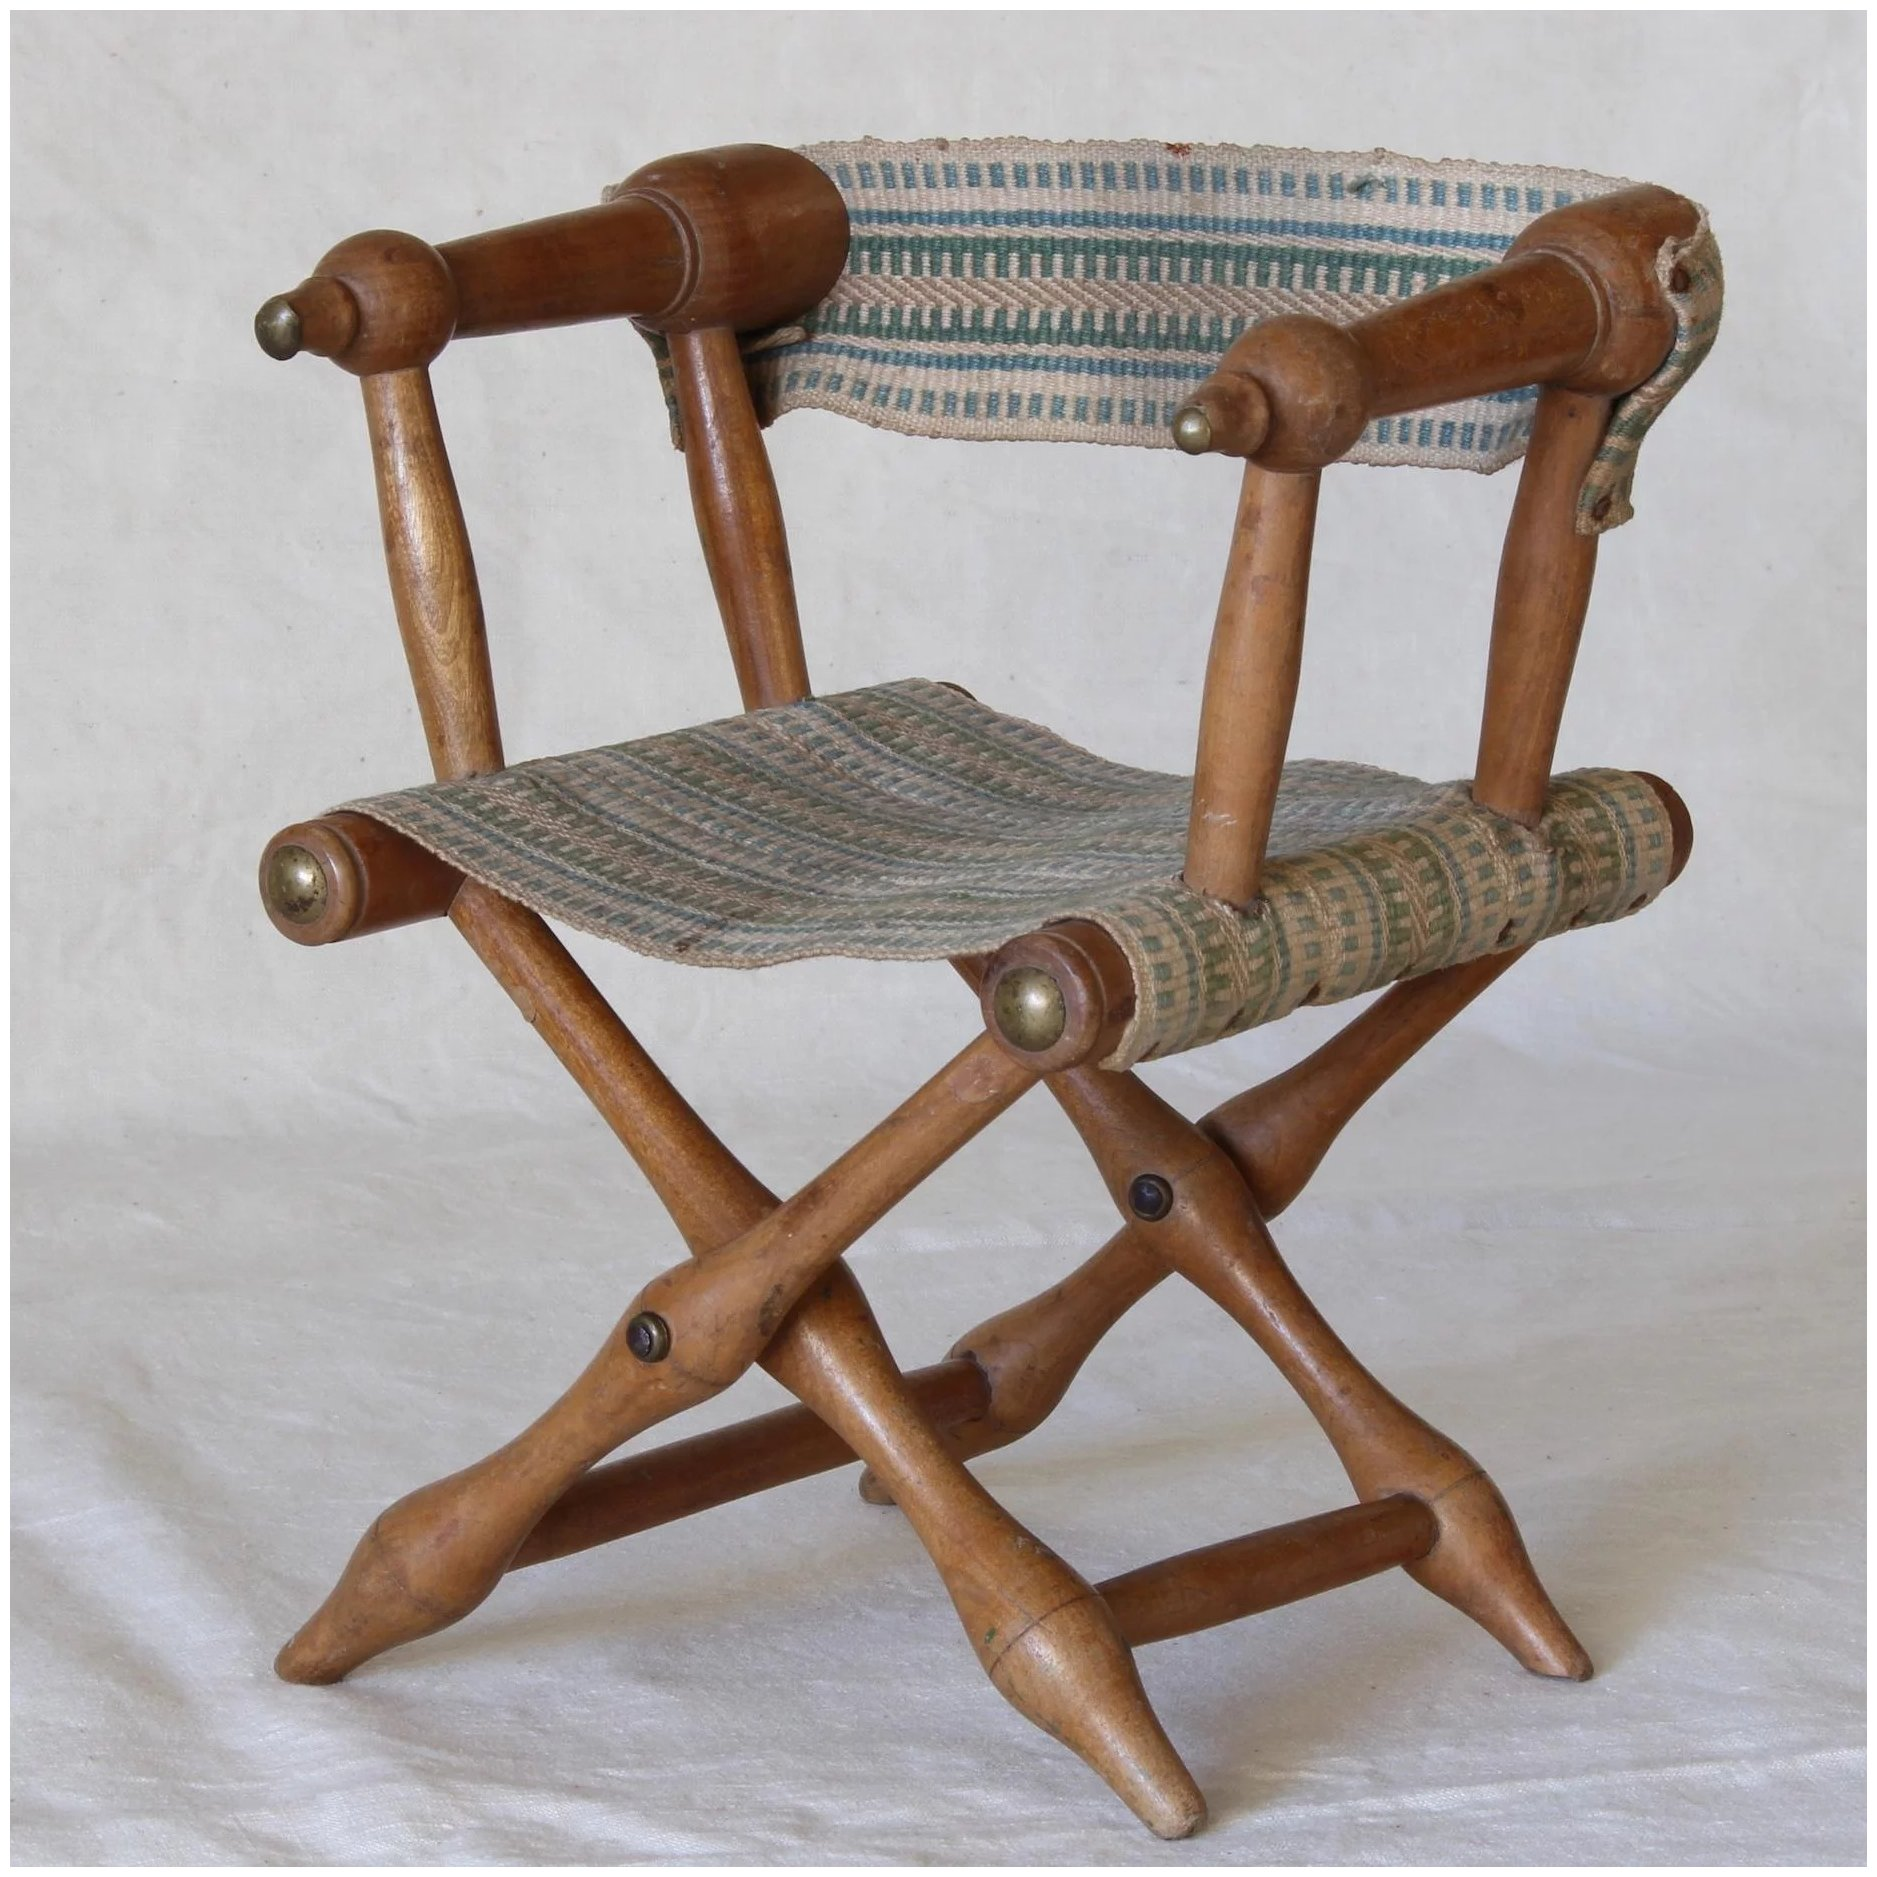 Cool Adorable French Folding Chair For Doll Circa 1900 Caraccident5 Cool Chair Designs And Ideas Caraccident5Info